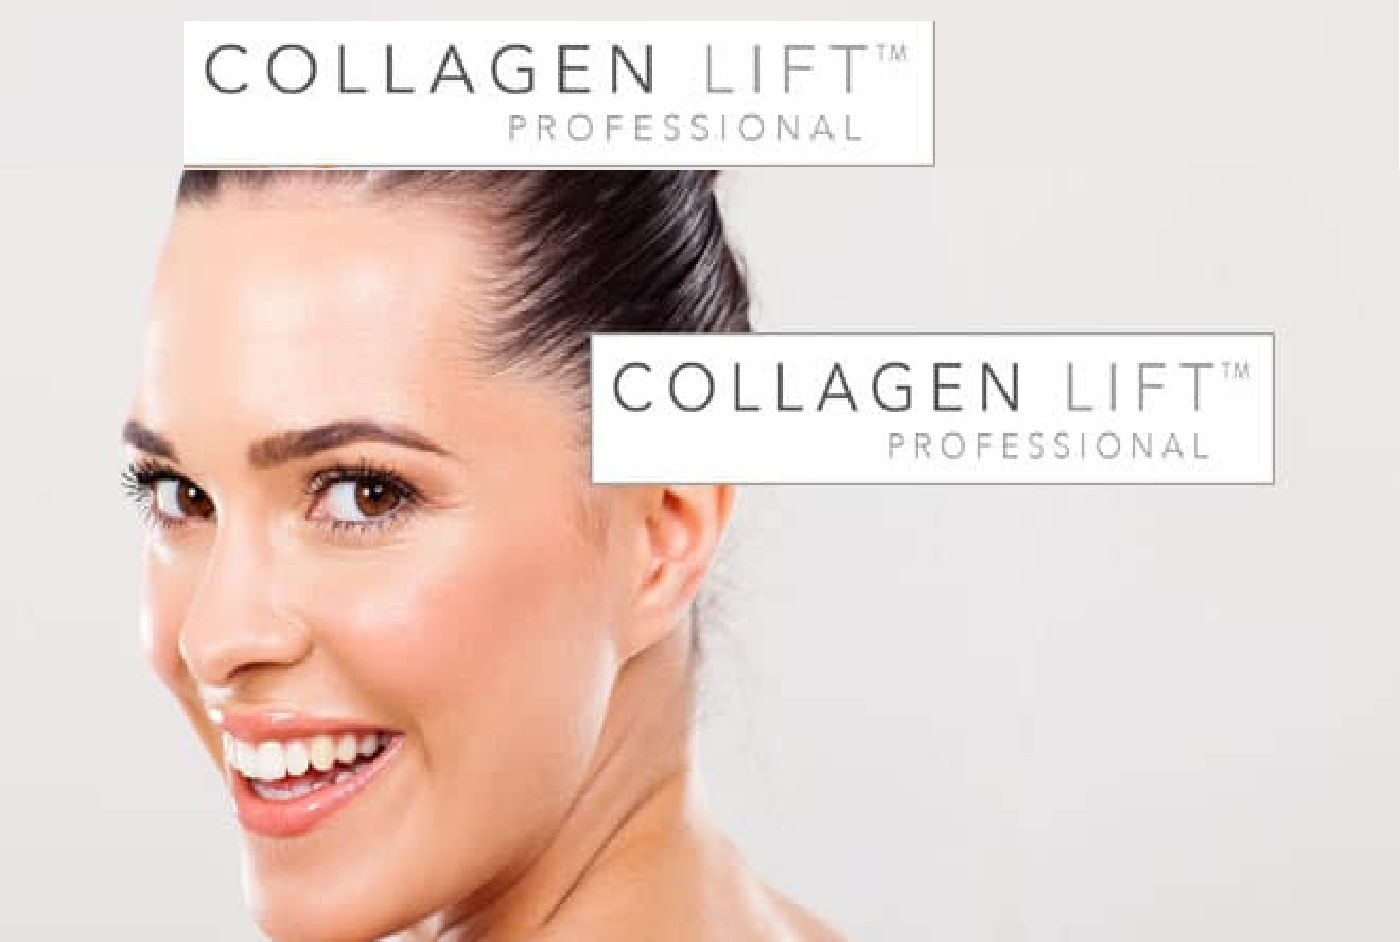 Collagen Lift – A facelift without surgery